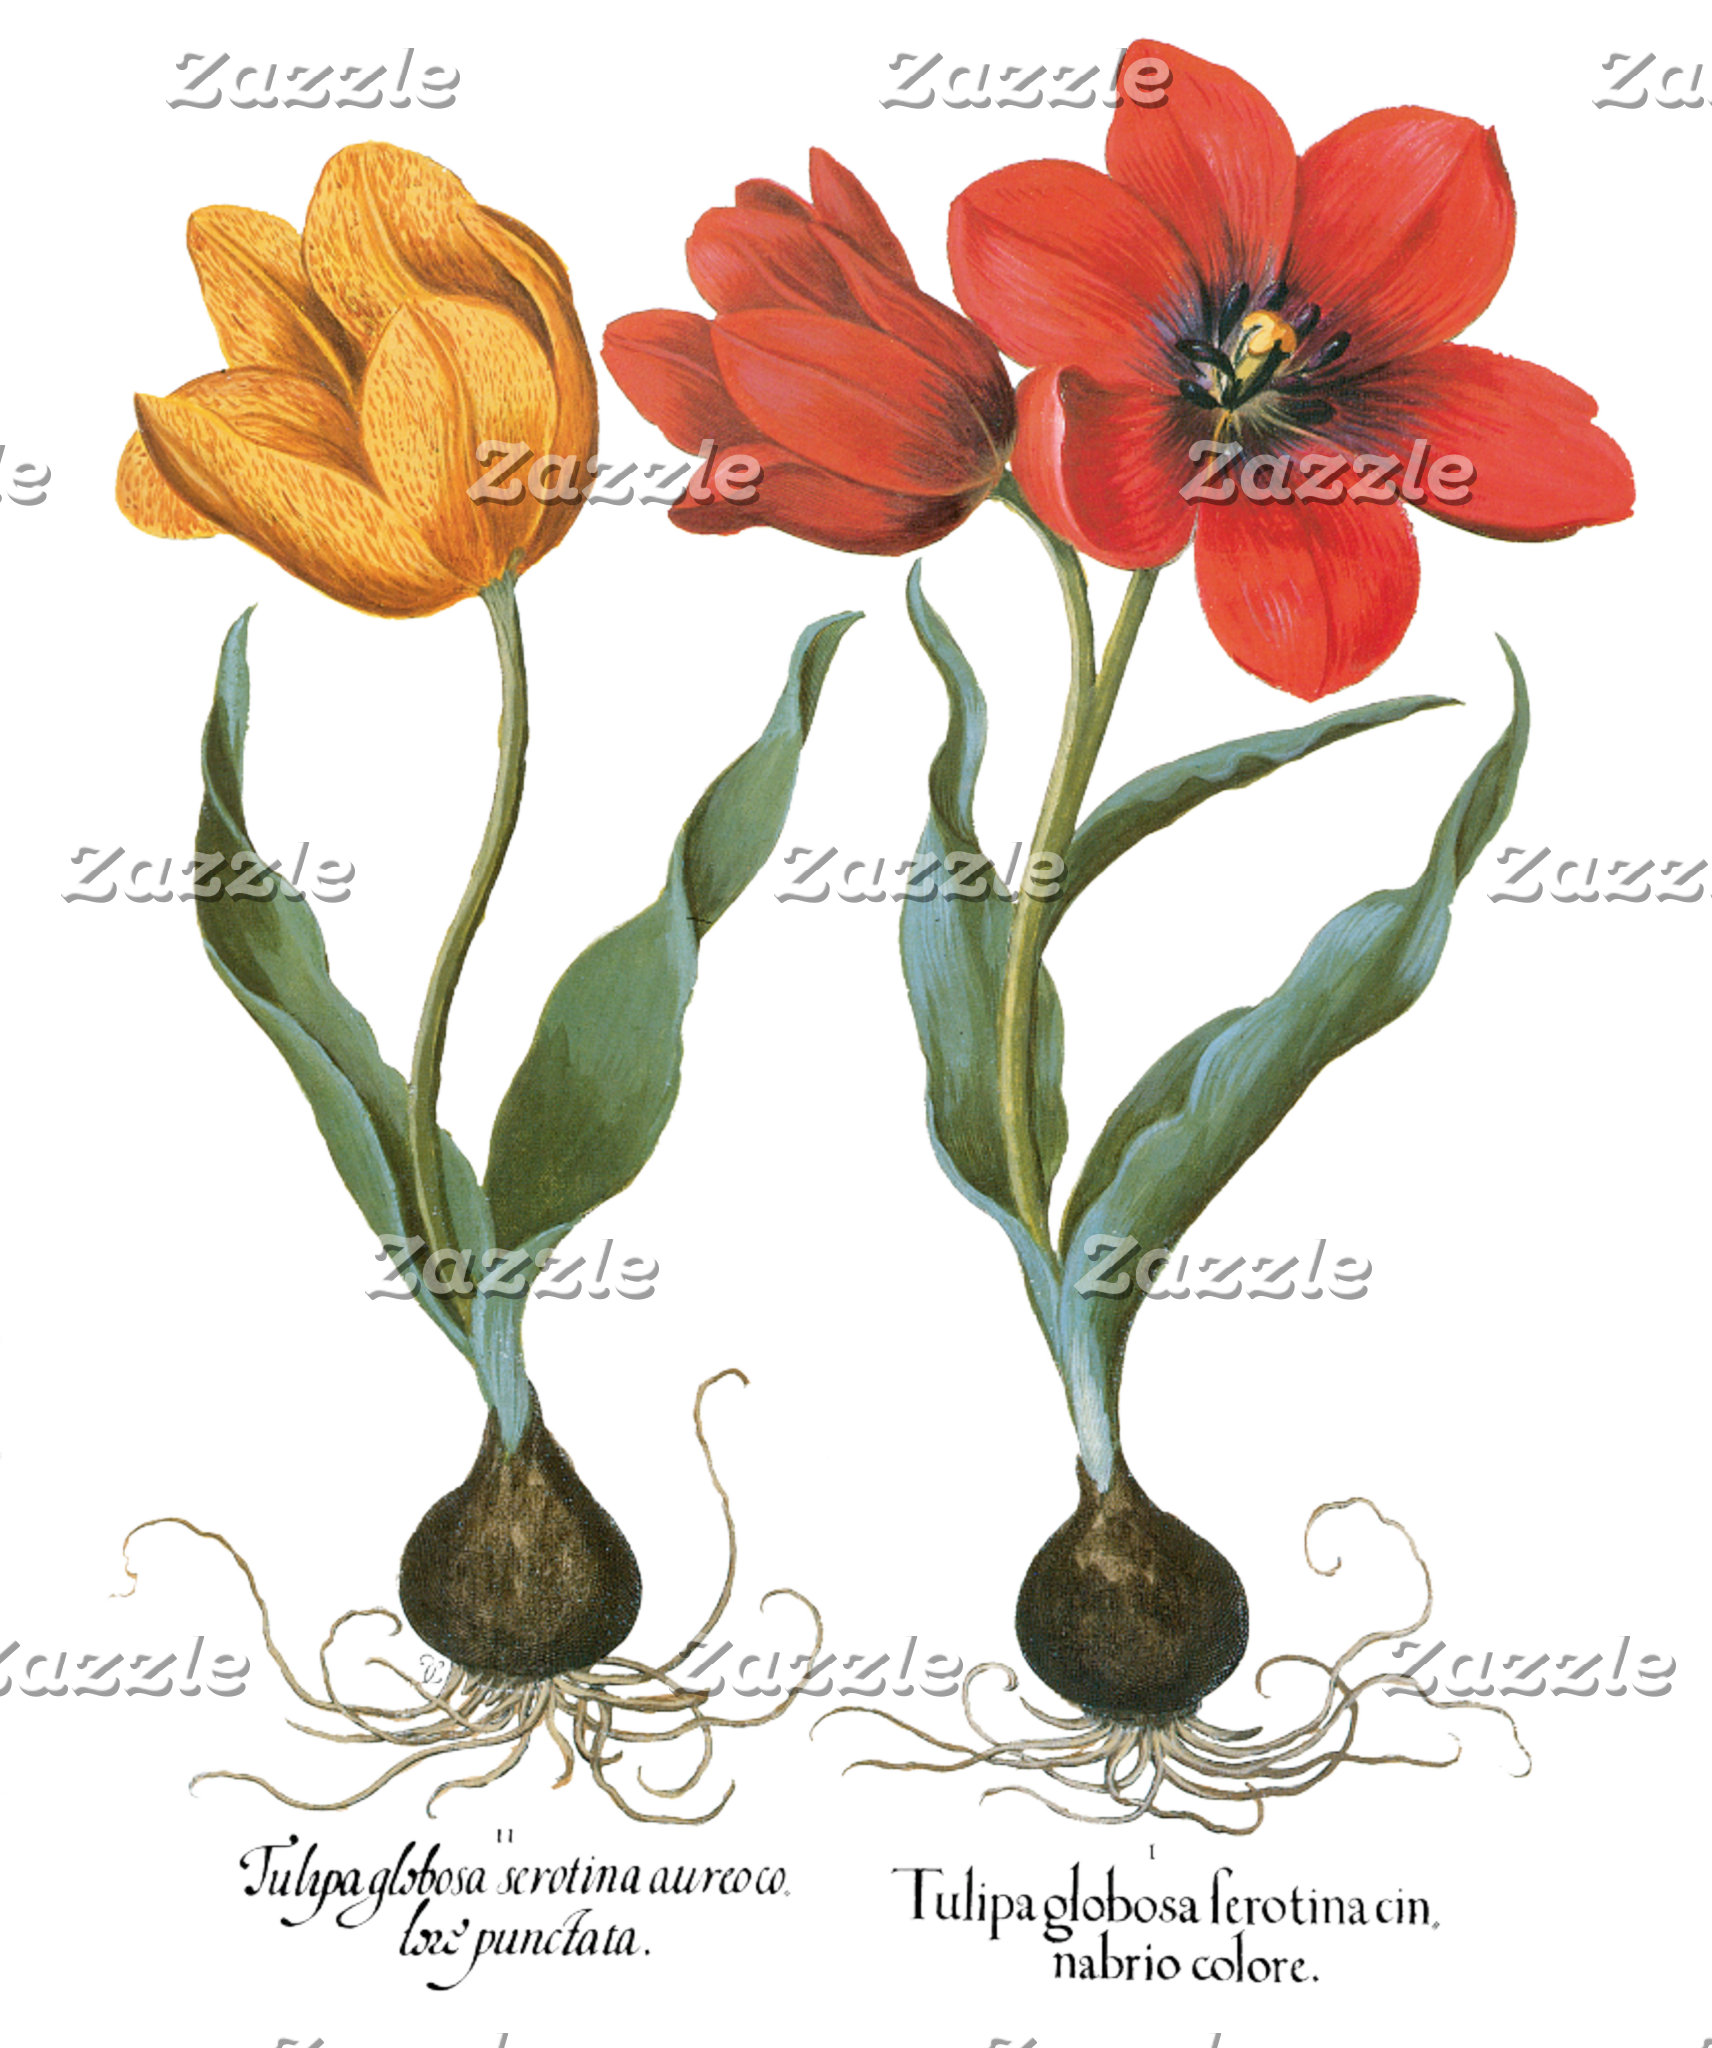 Botanical Art, Flowers and Garden Scenes Gifts